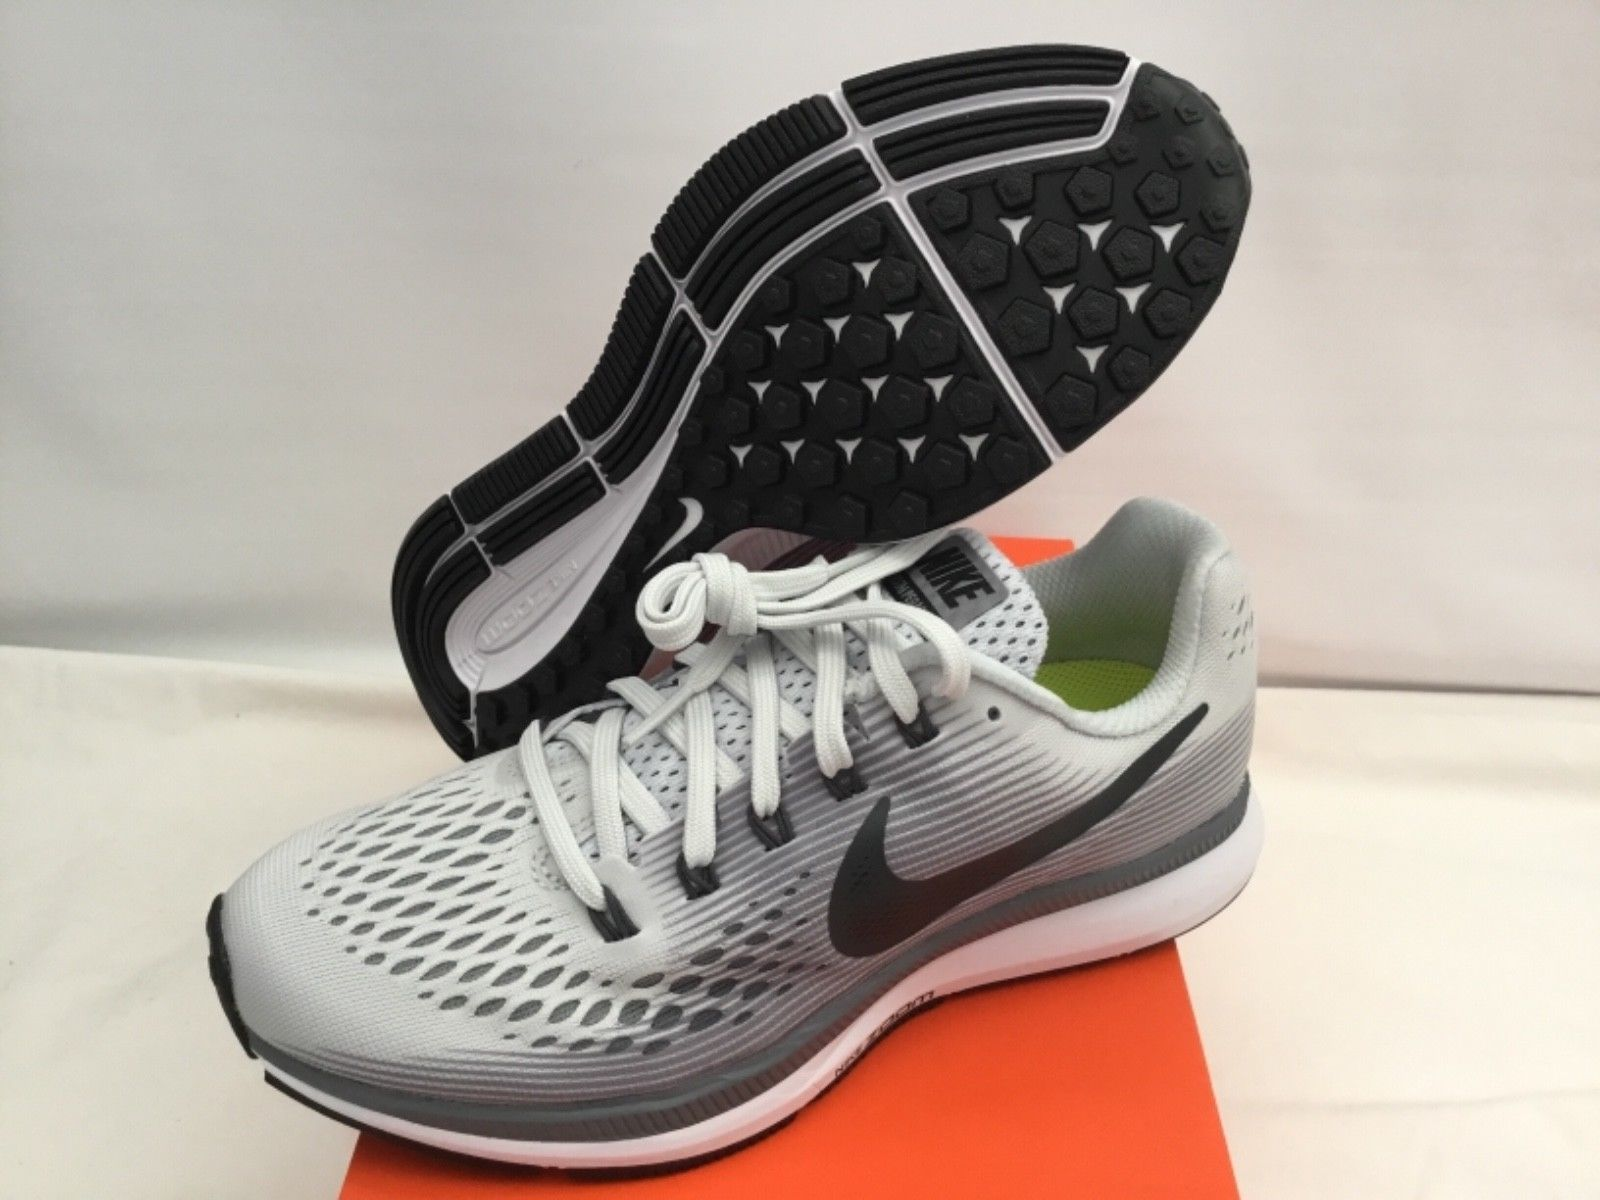 f0305711428fc 57. 57. Nike Womens Air Zoom Pegasus 34 Pure Platinum Anthracite Running  Shoes Size 6.5 · Nike Womens Air Zoom ...